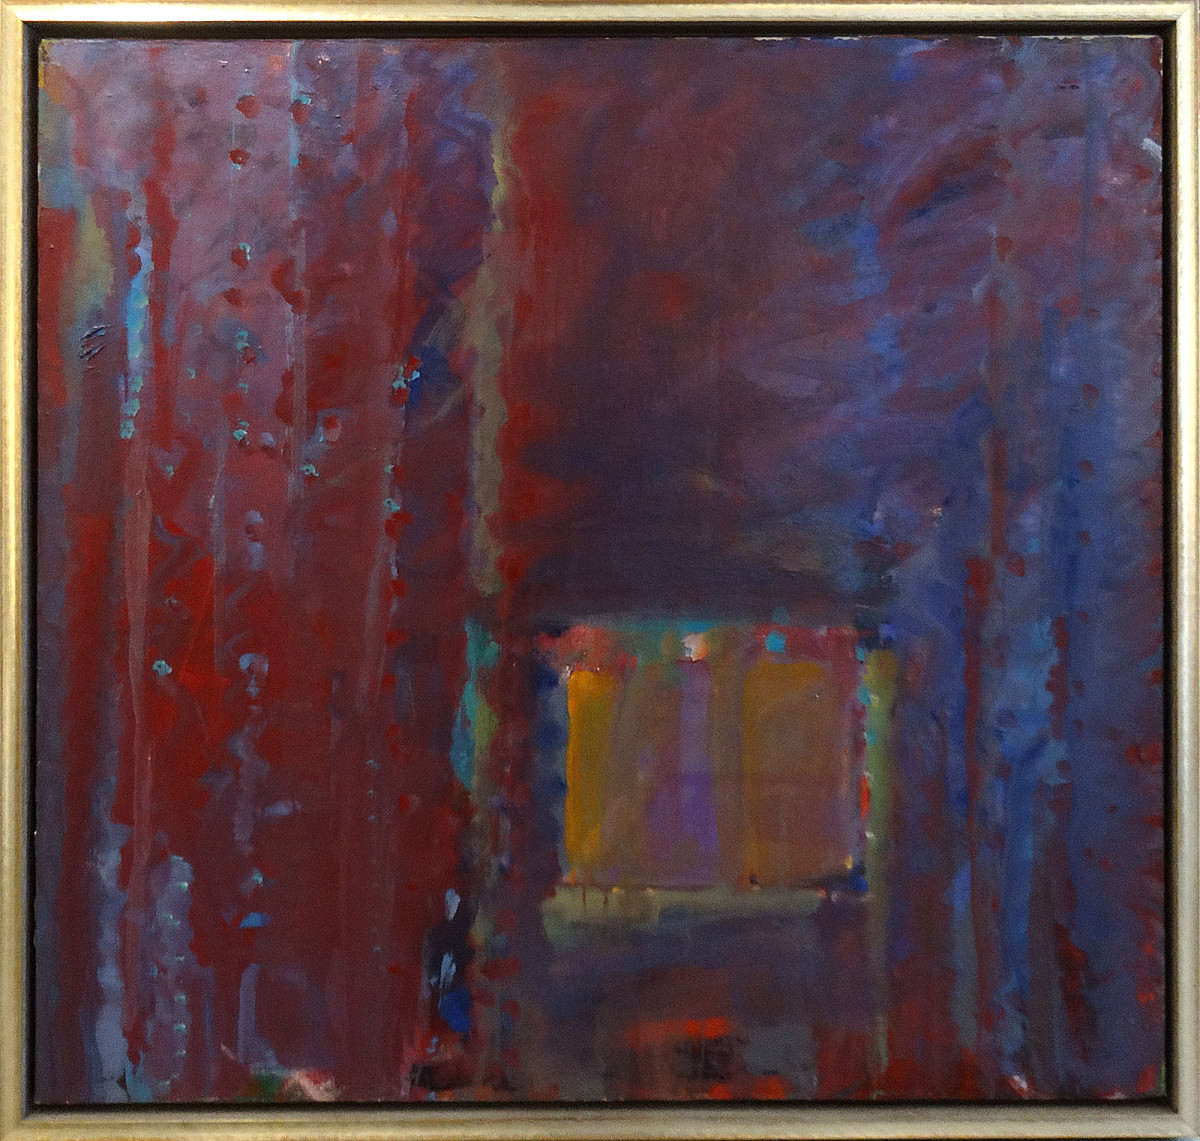 0019 - Untitled Abstract by Charlotte Brieff